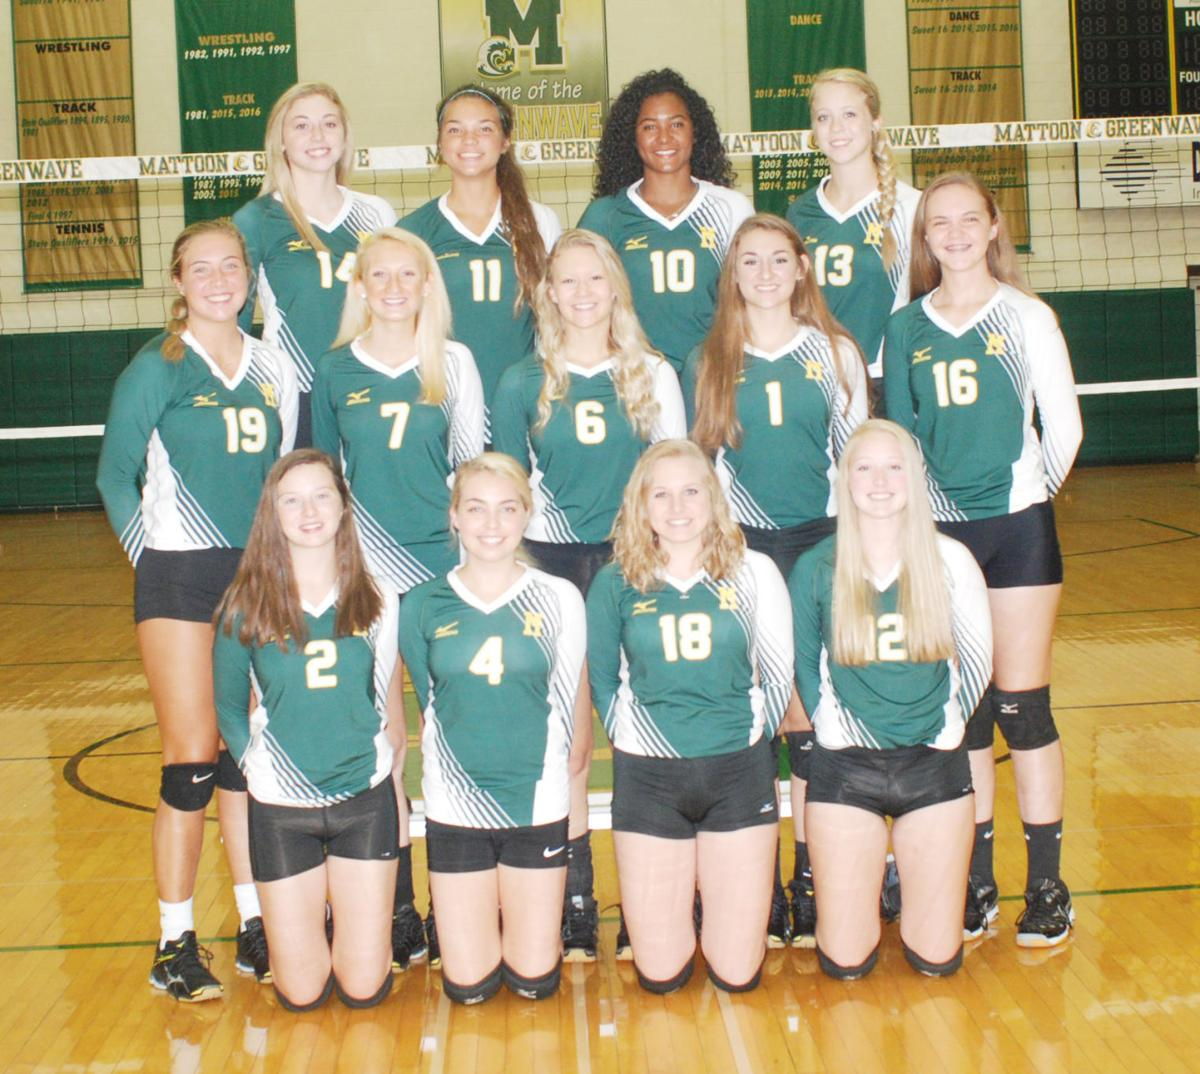 Mattoon Looks To Get Apollo Title Back